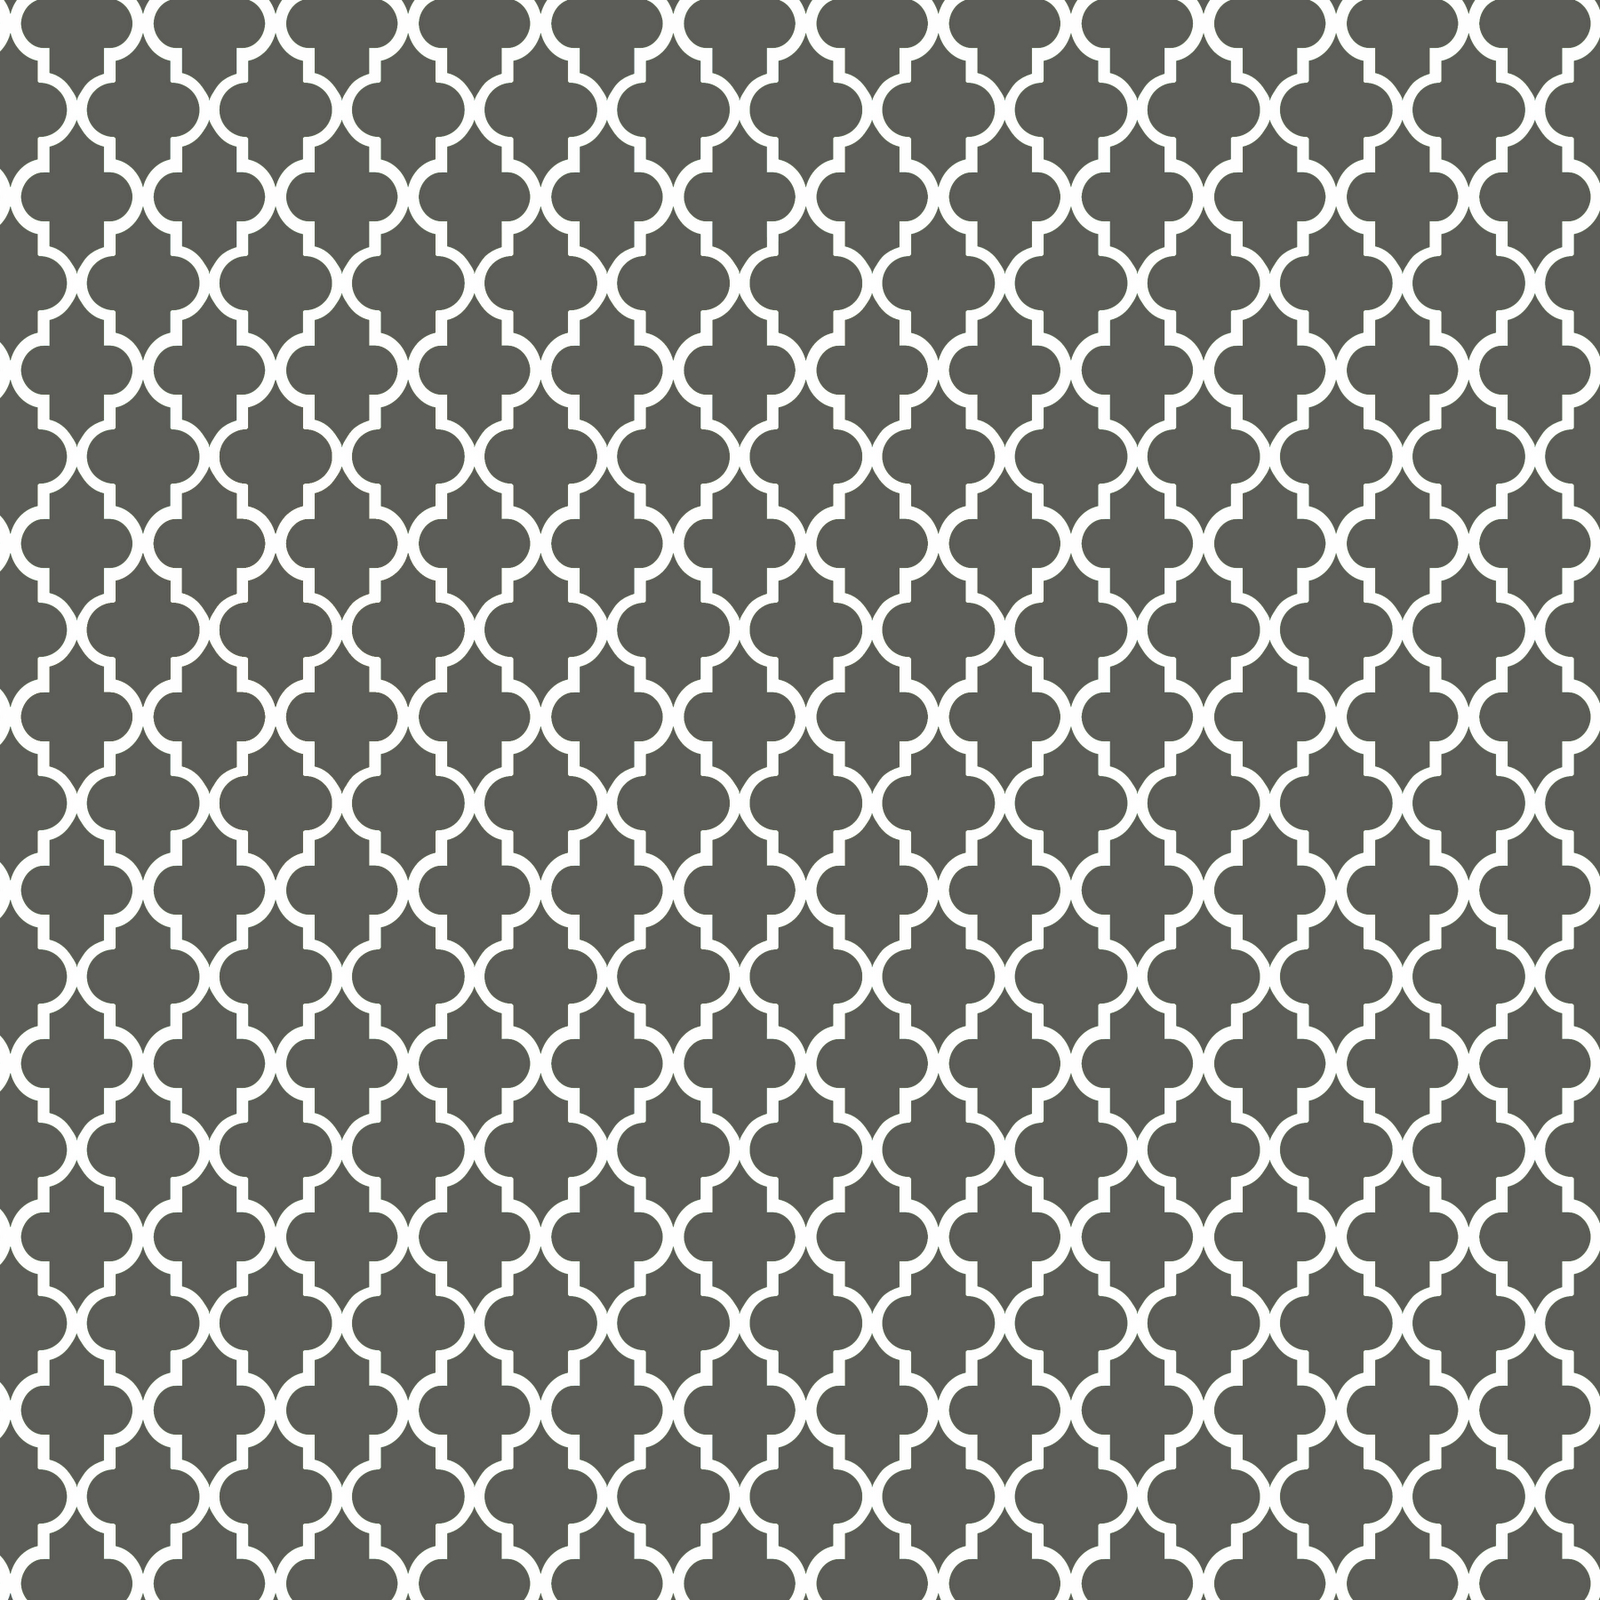 Moroccan And Quatrefoil Backgrounds In Lots Of Colors! More Free - Free Printable Patterns